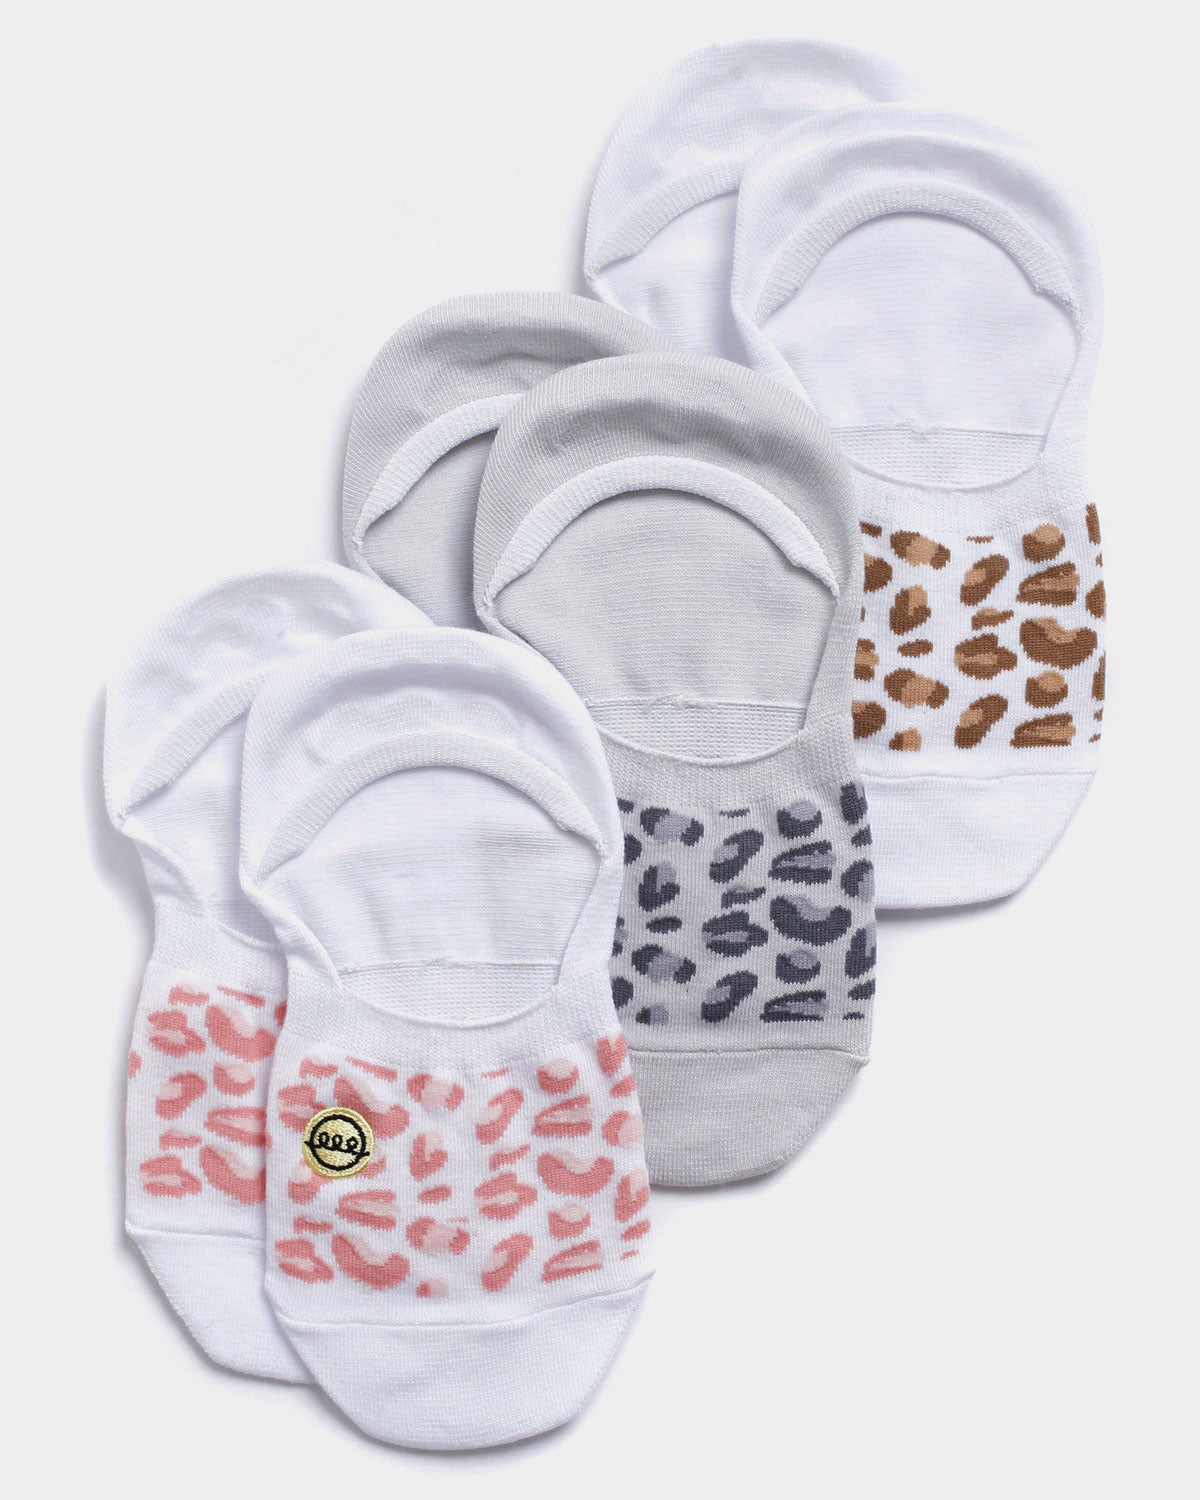 Cheetah Print No Show Sock Bundle